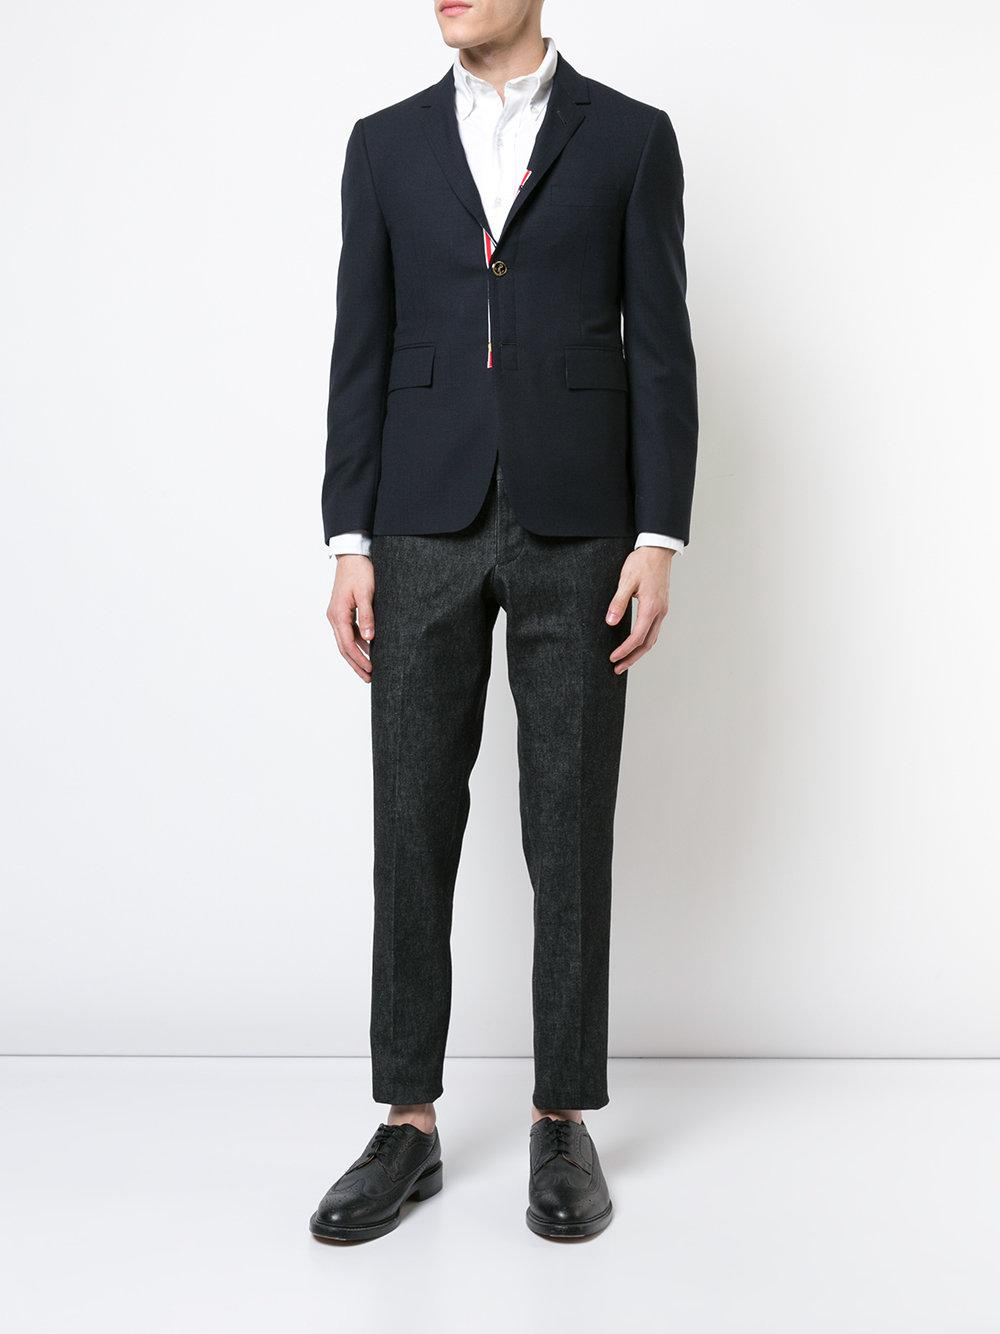 Thom Browne Cotton Tapered Tailored Trousers in Black for Men